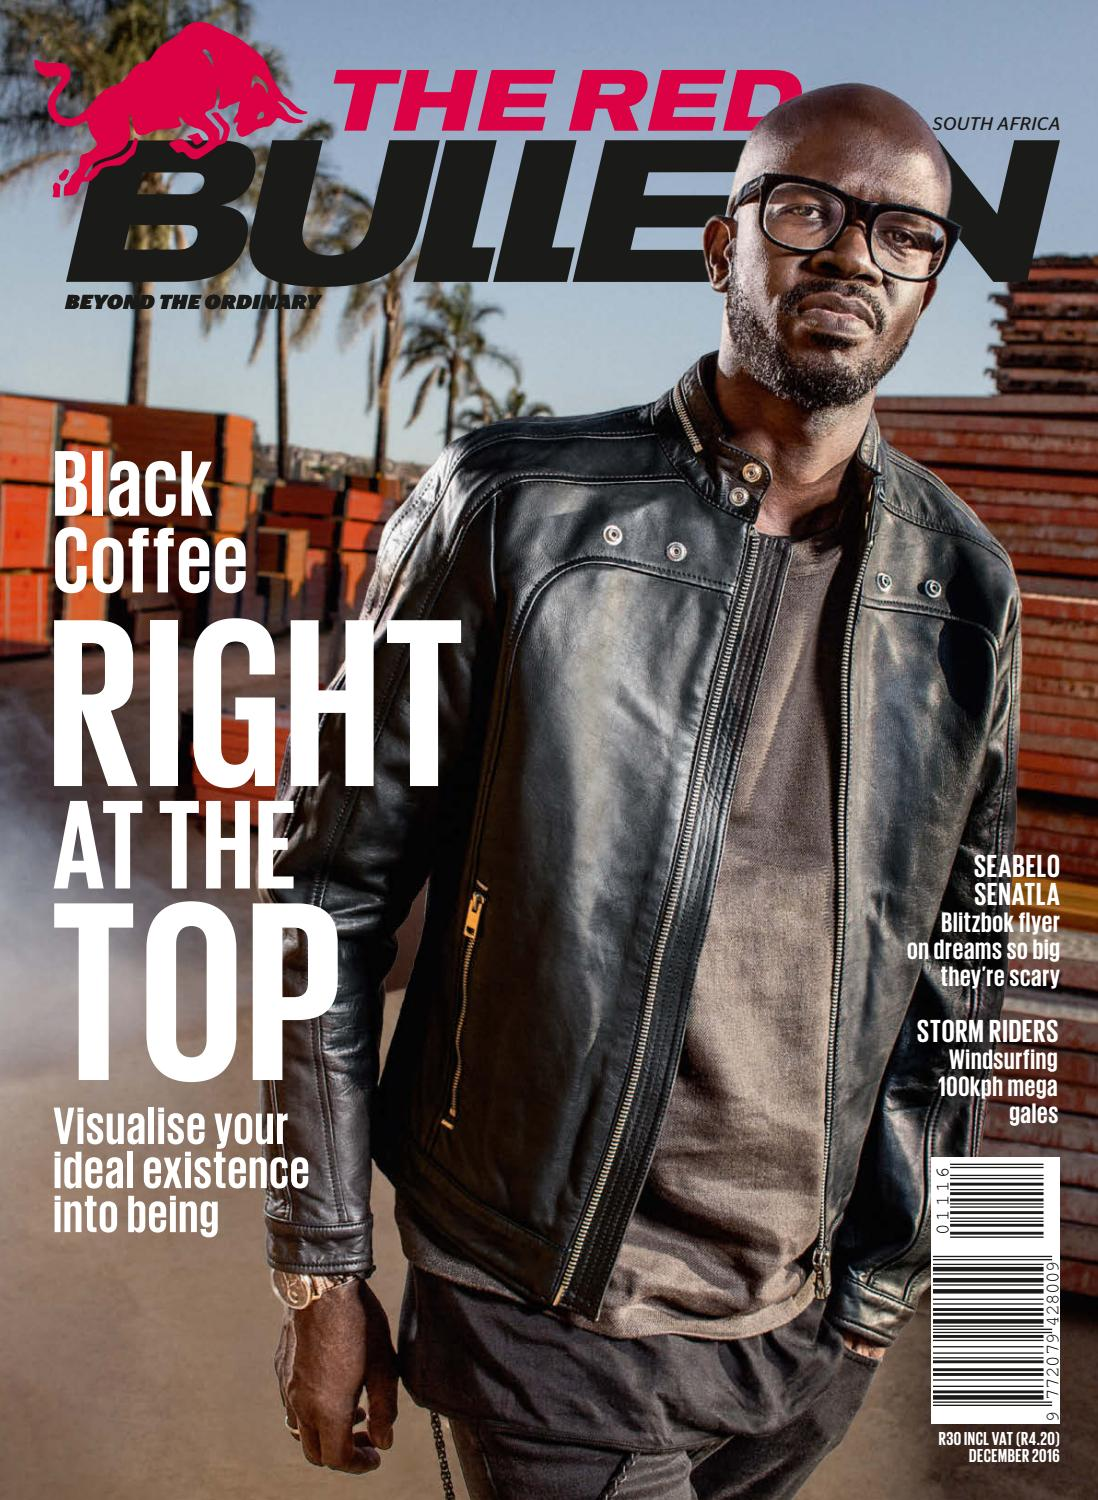 68b15fb4b4 The Red Bulletin December 2016 - ZA by Red Bull Media House - issuu